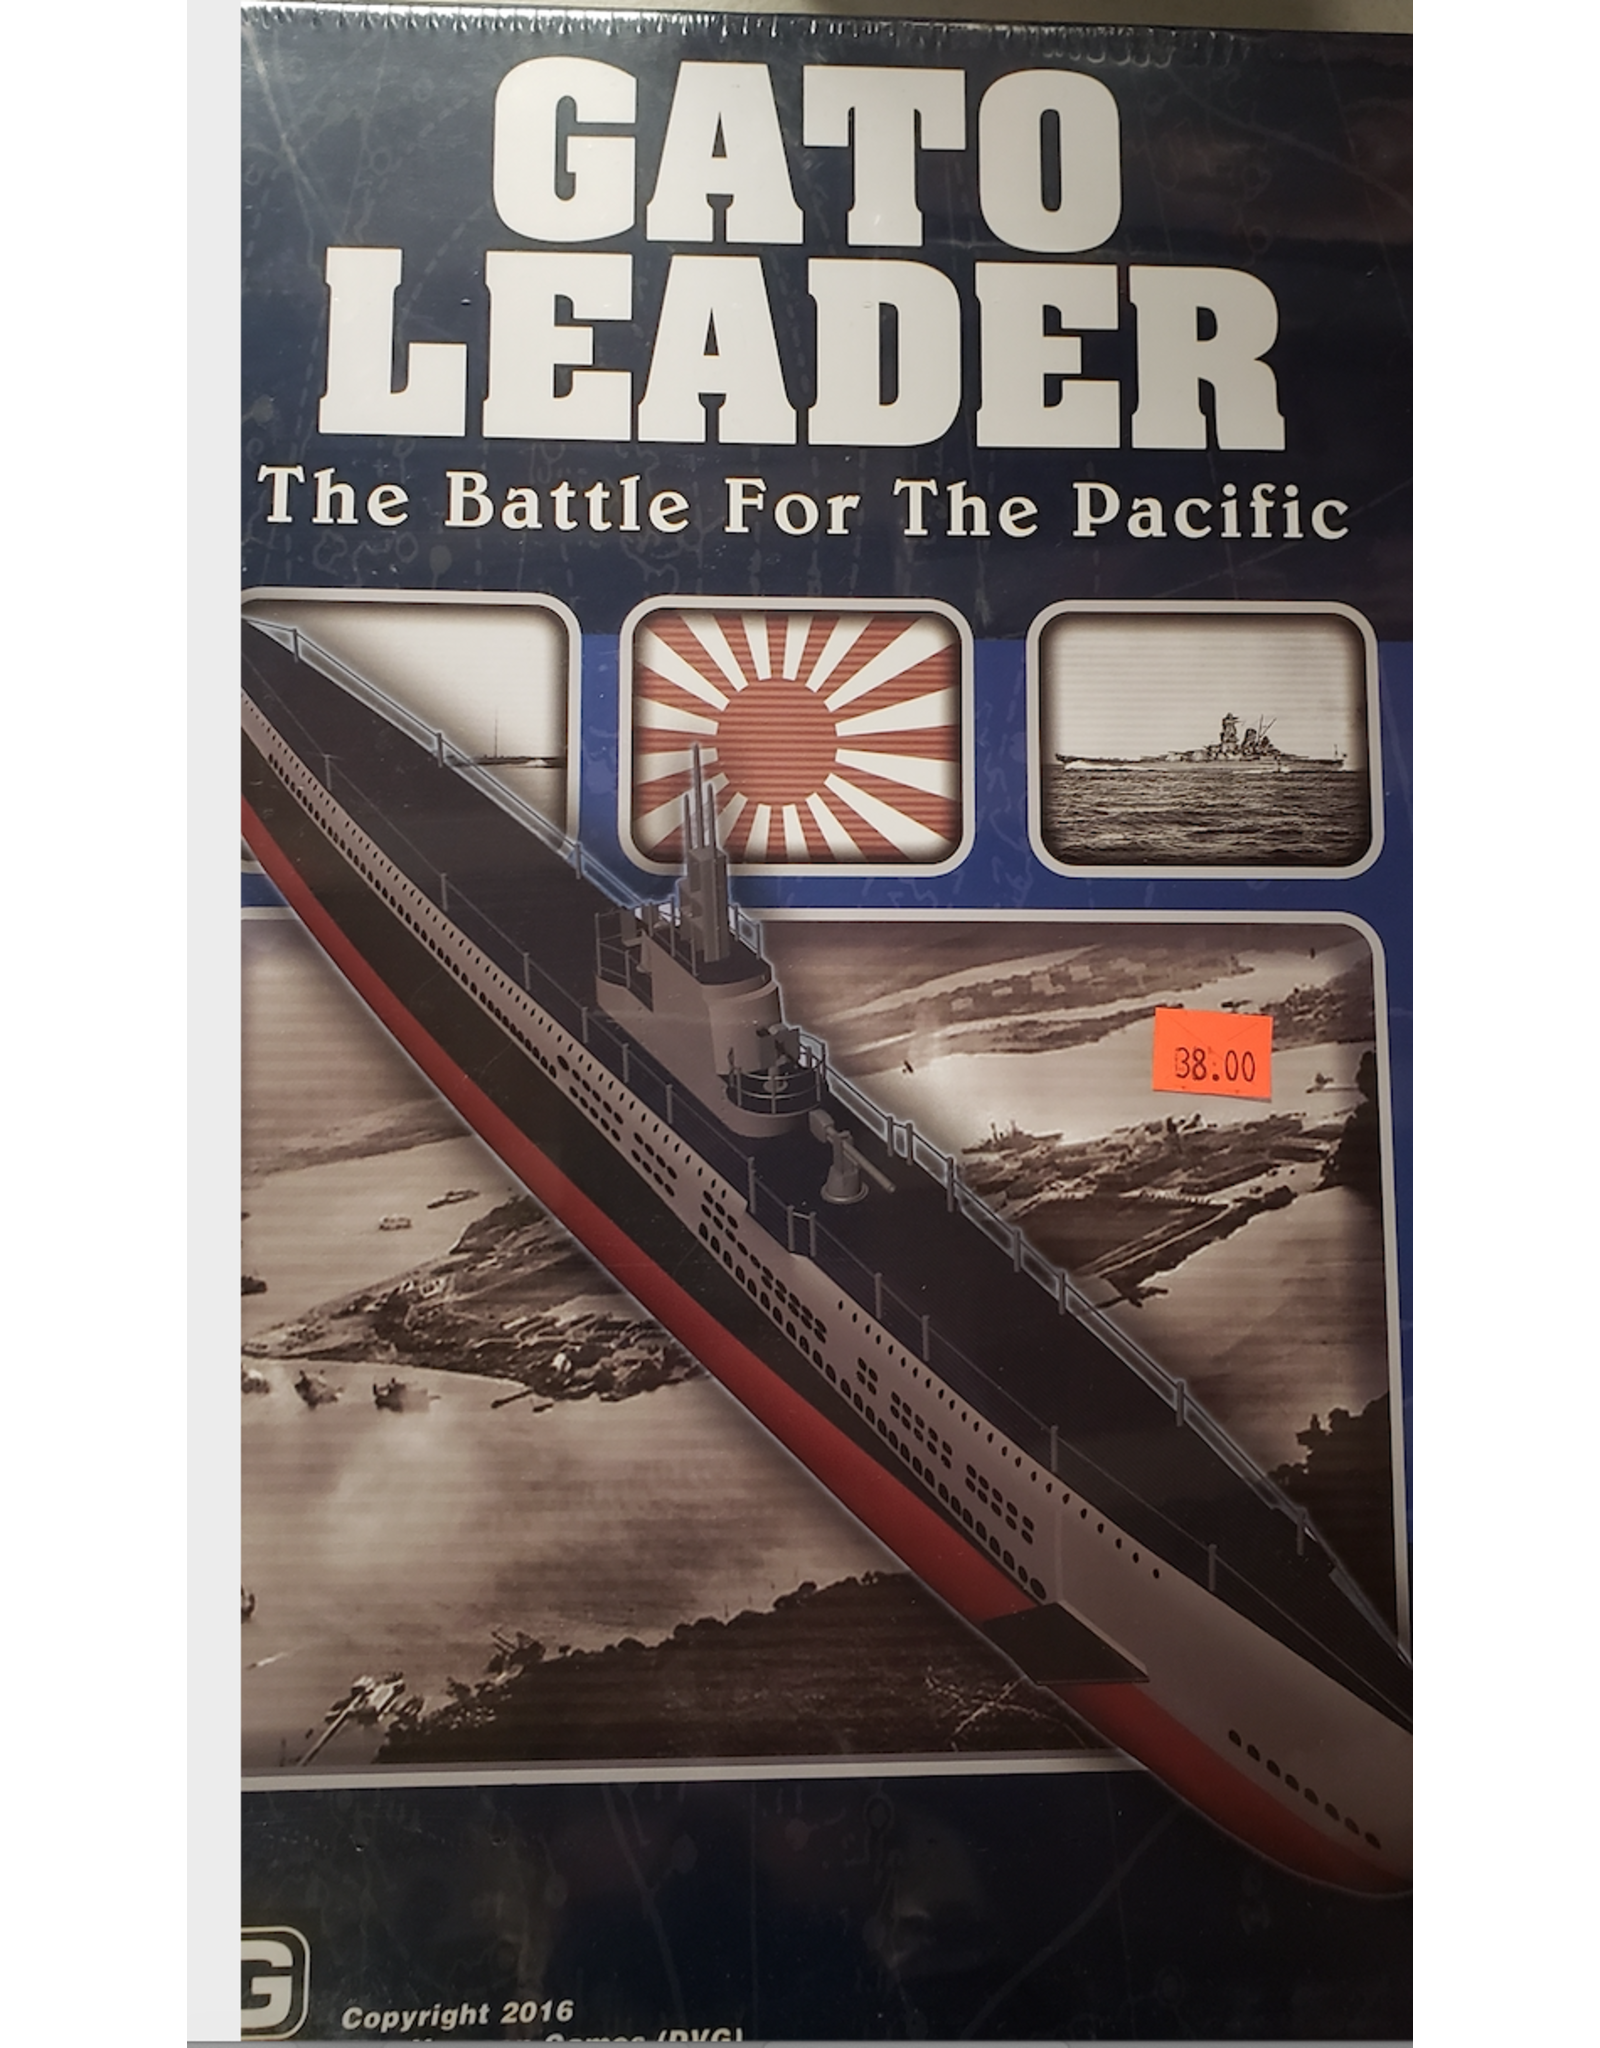 Ding & Dent Gato Leader: The Battle for the Pacific (Ding & Dent)